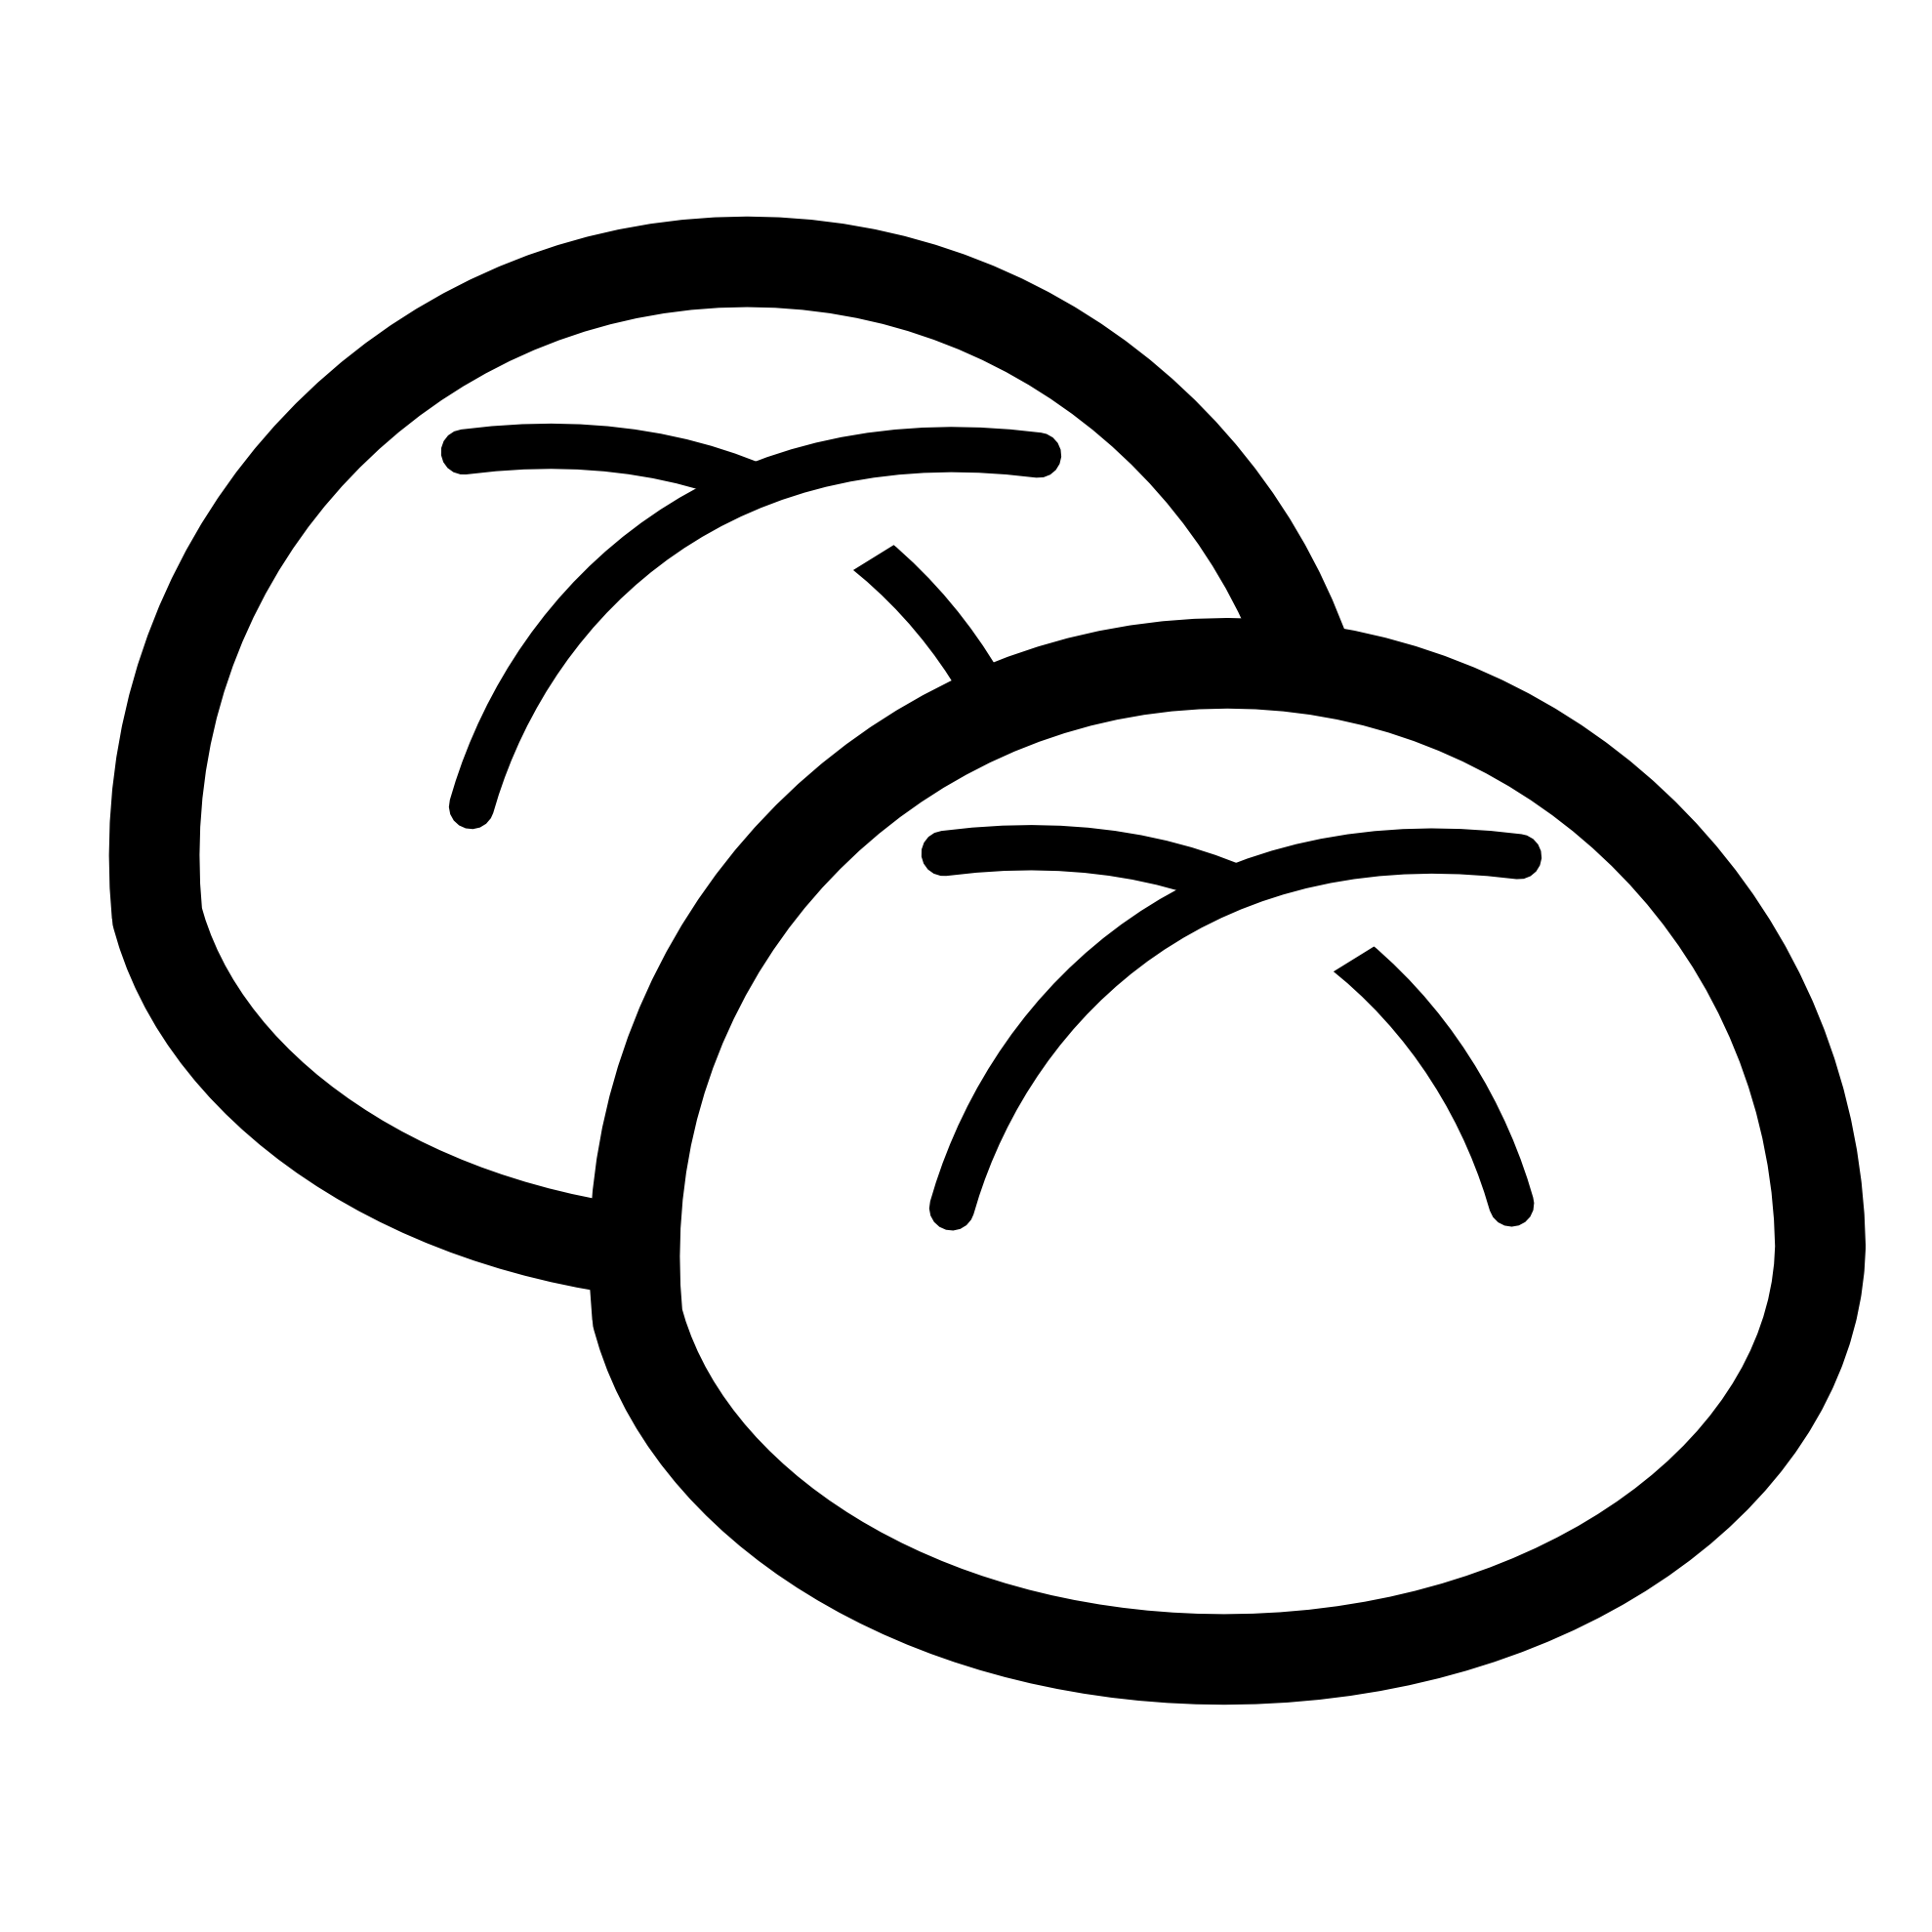 Baguette Black And White Buns Black White Line Art